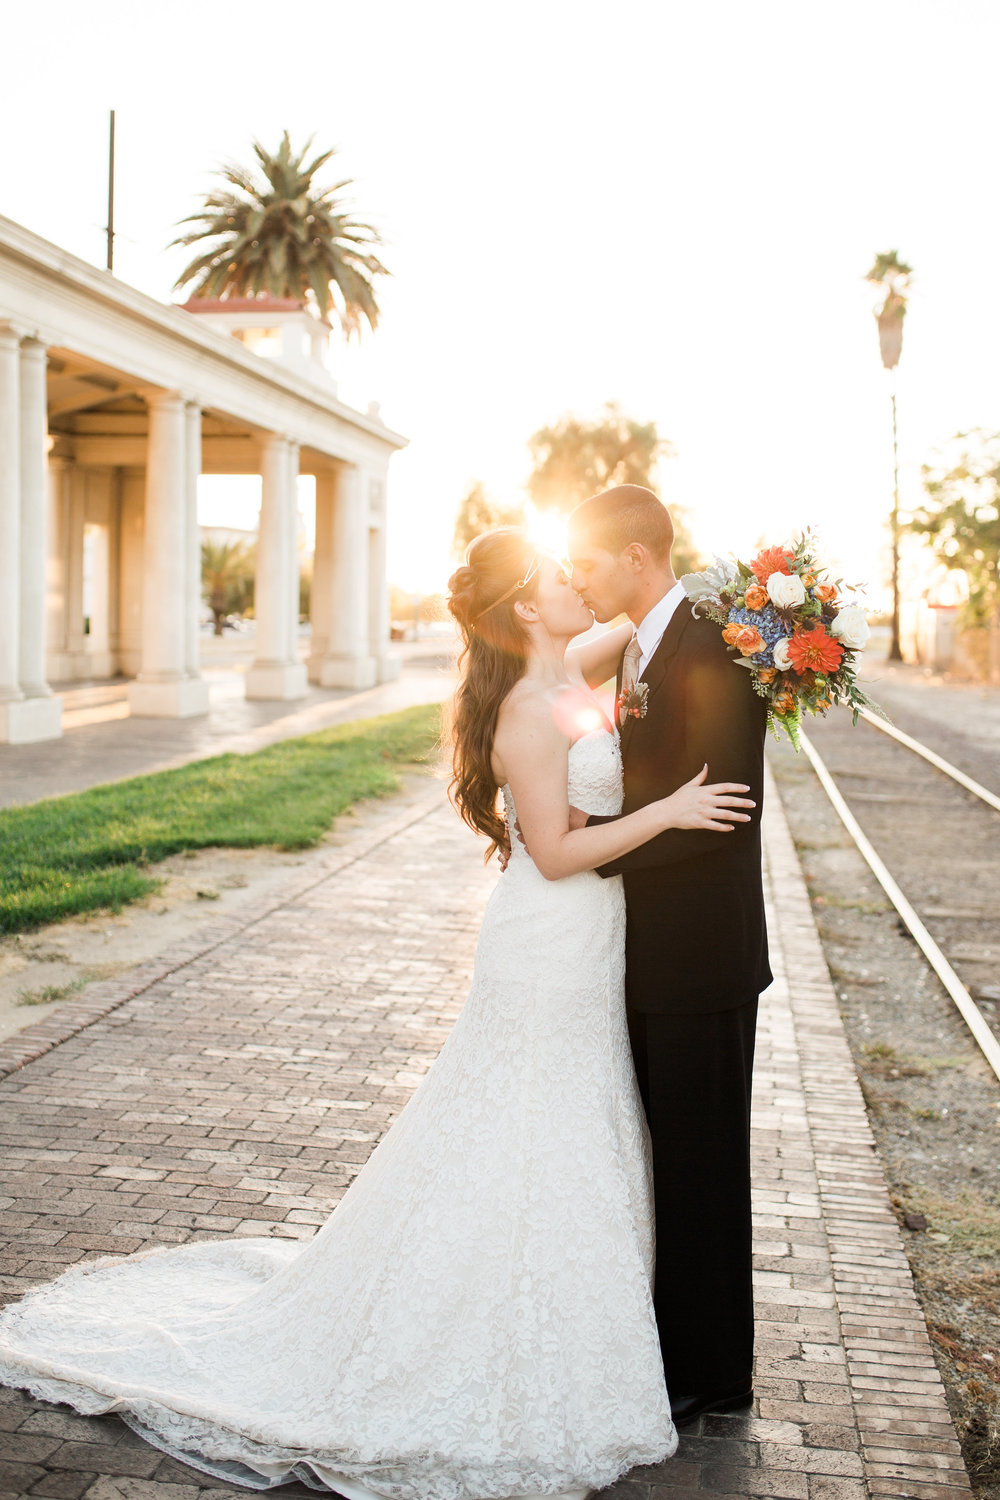 destination wedding photographer, weddings, bride, wedding photographer, southern california